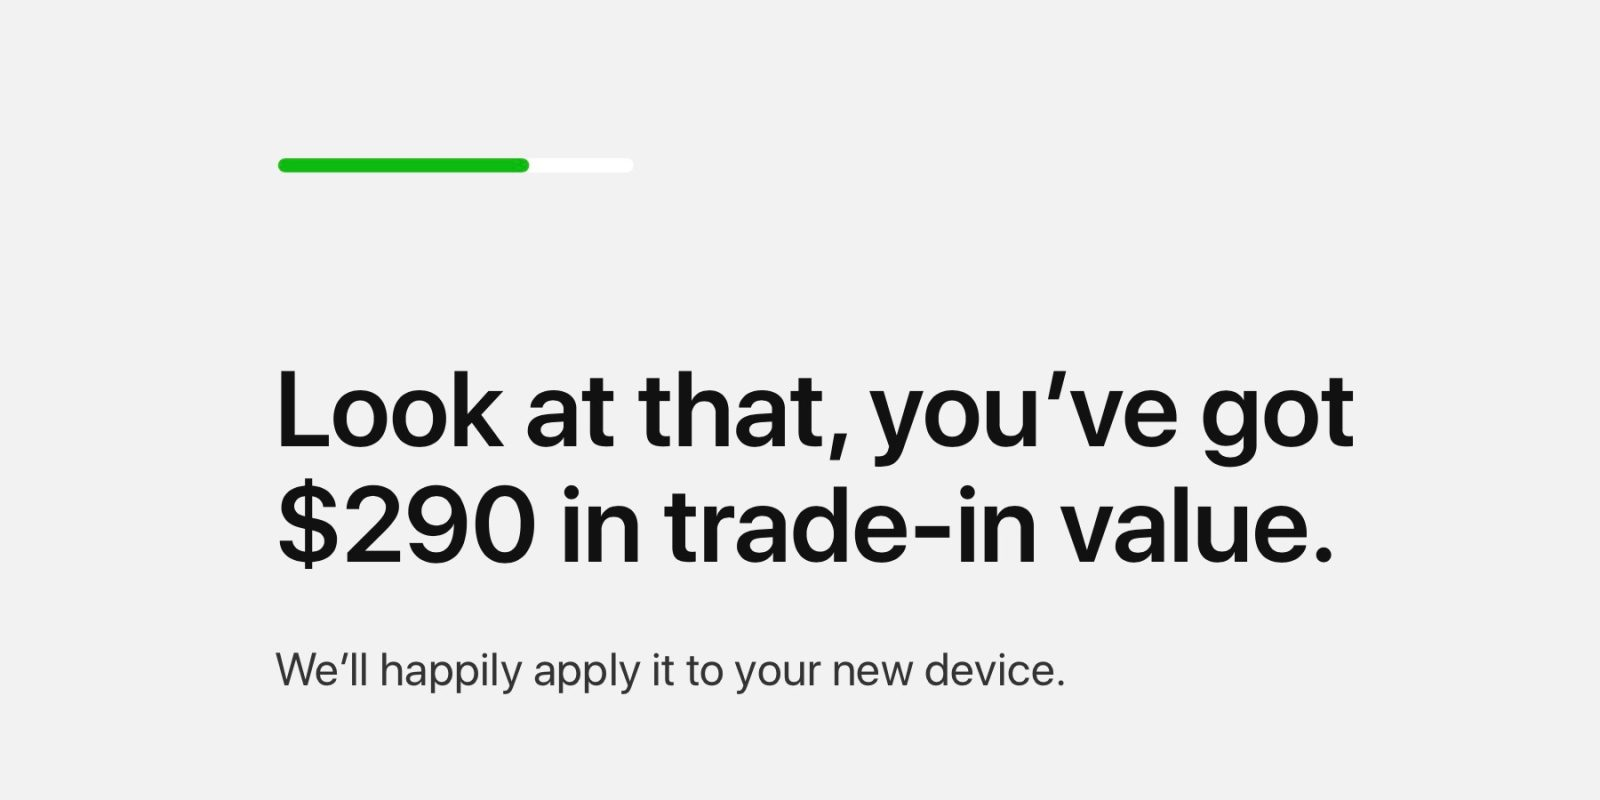 photo image Apple pushes GiveBack program with trade-ins now worth instant credit toward new iPhone, iPad, Apple Watch, Mac